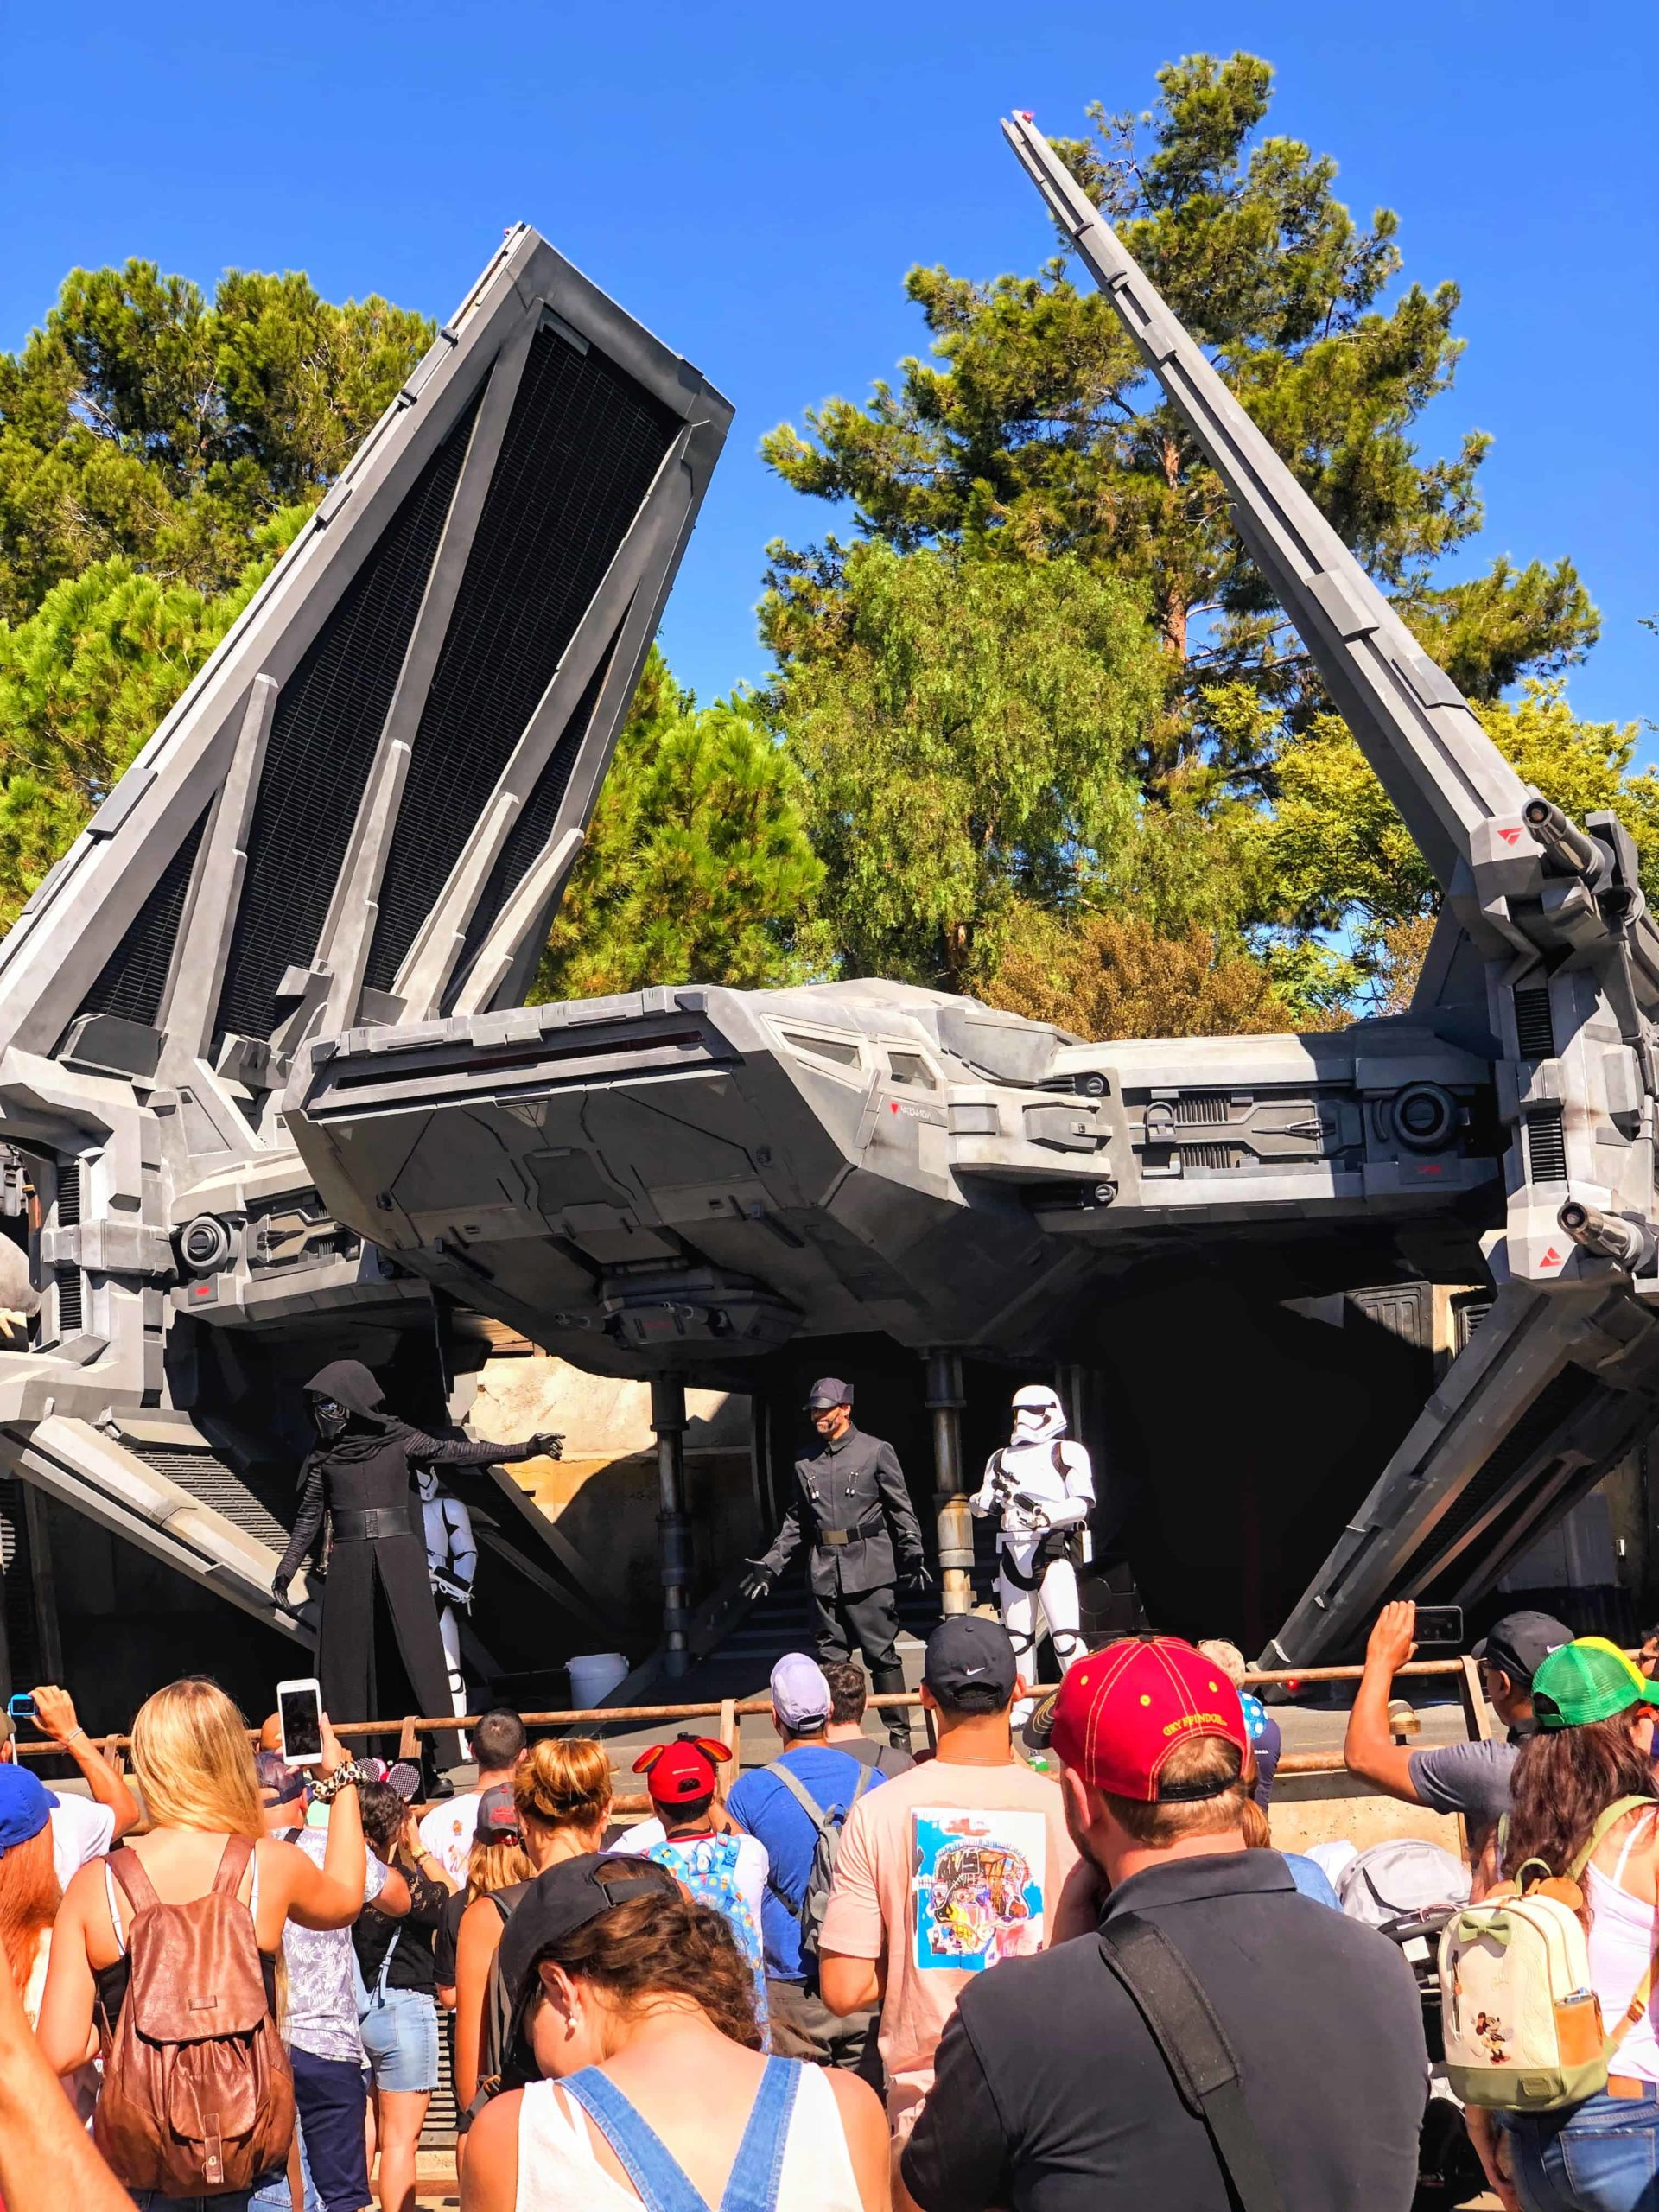 What Should You Not Miss At Disneyland?